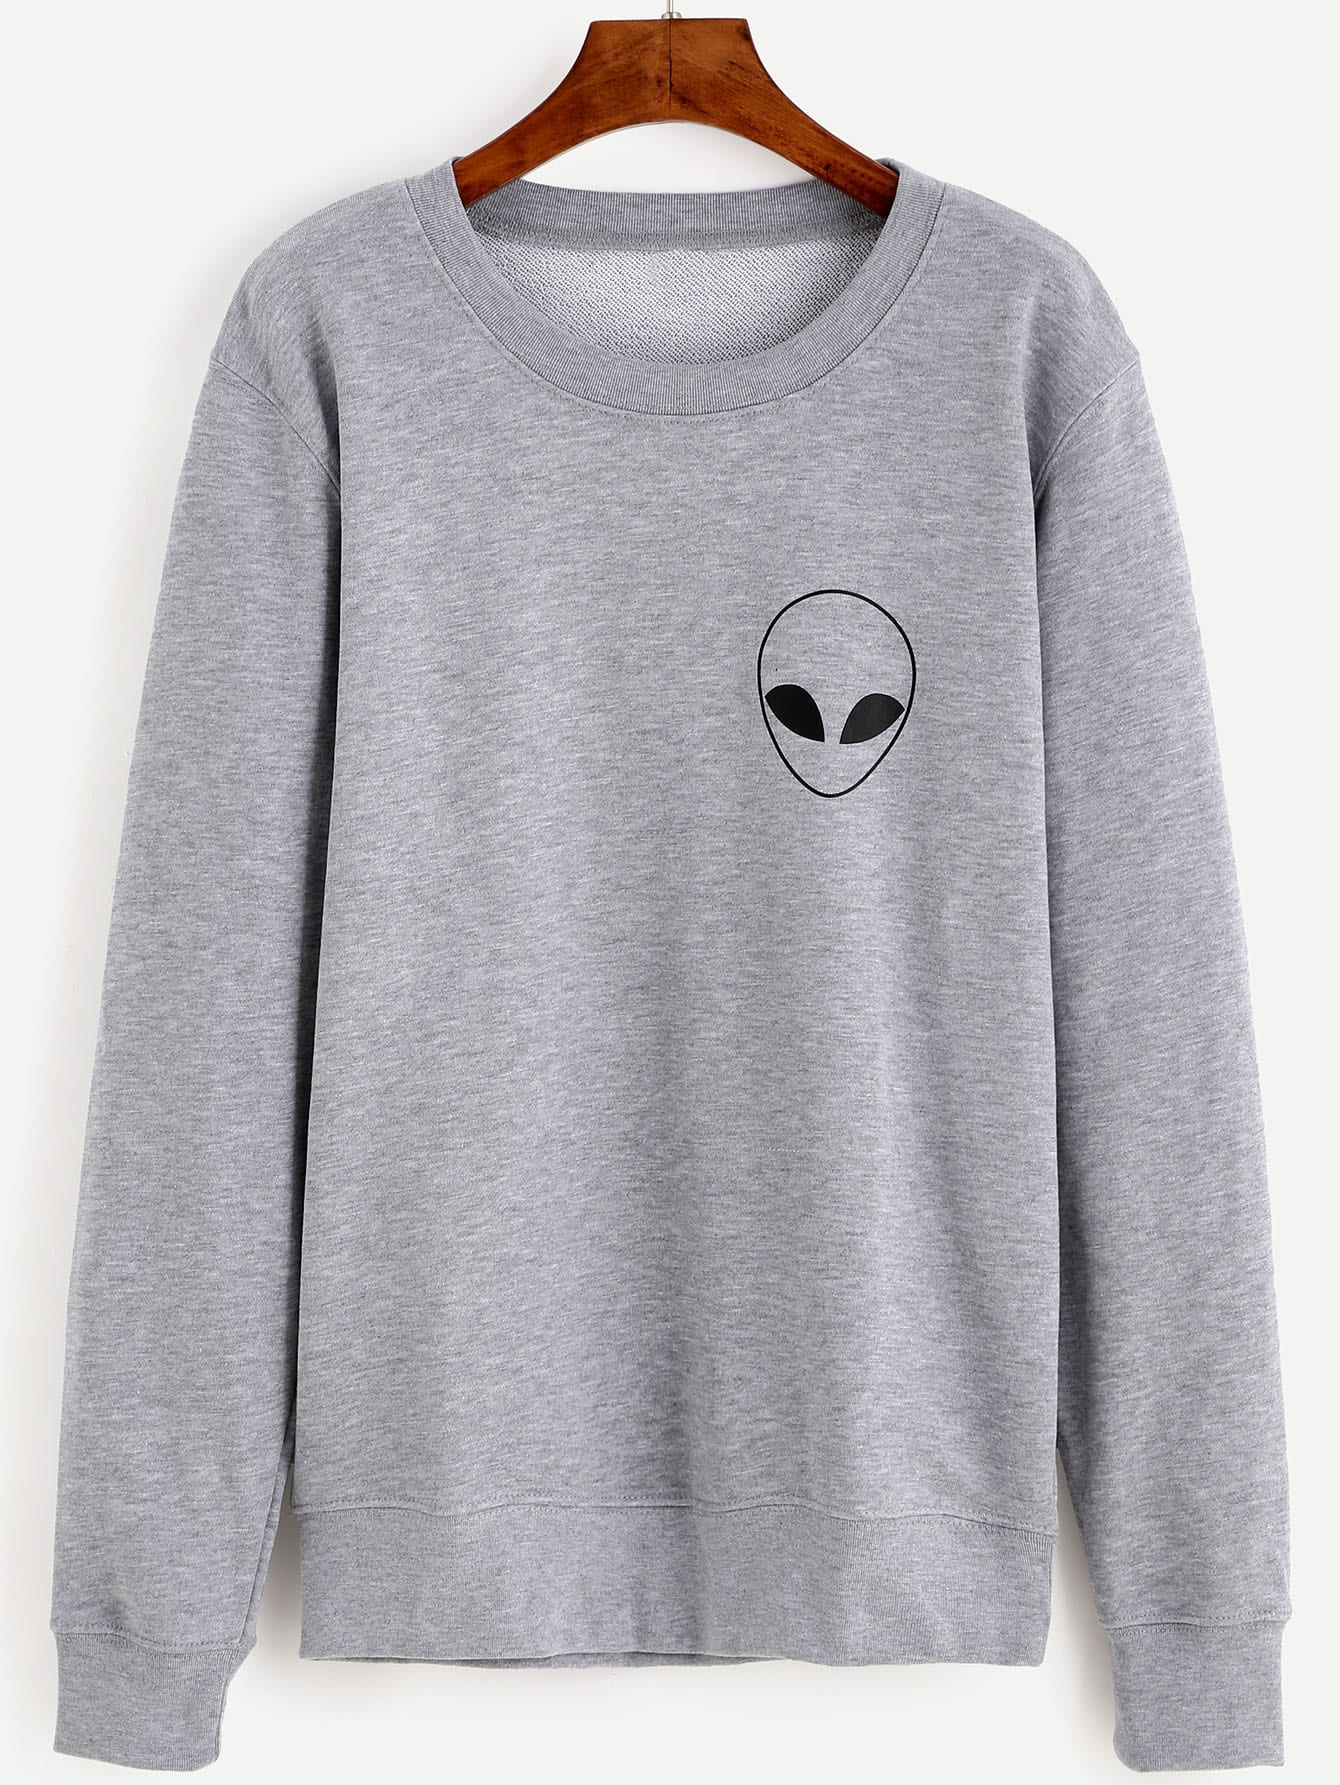 Grey Alien Print Long Sleeve Sweatshirt sweatshirt160803303